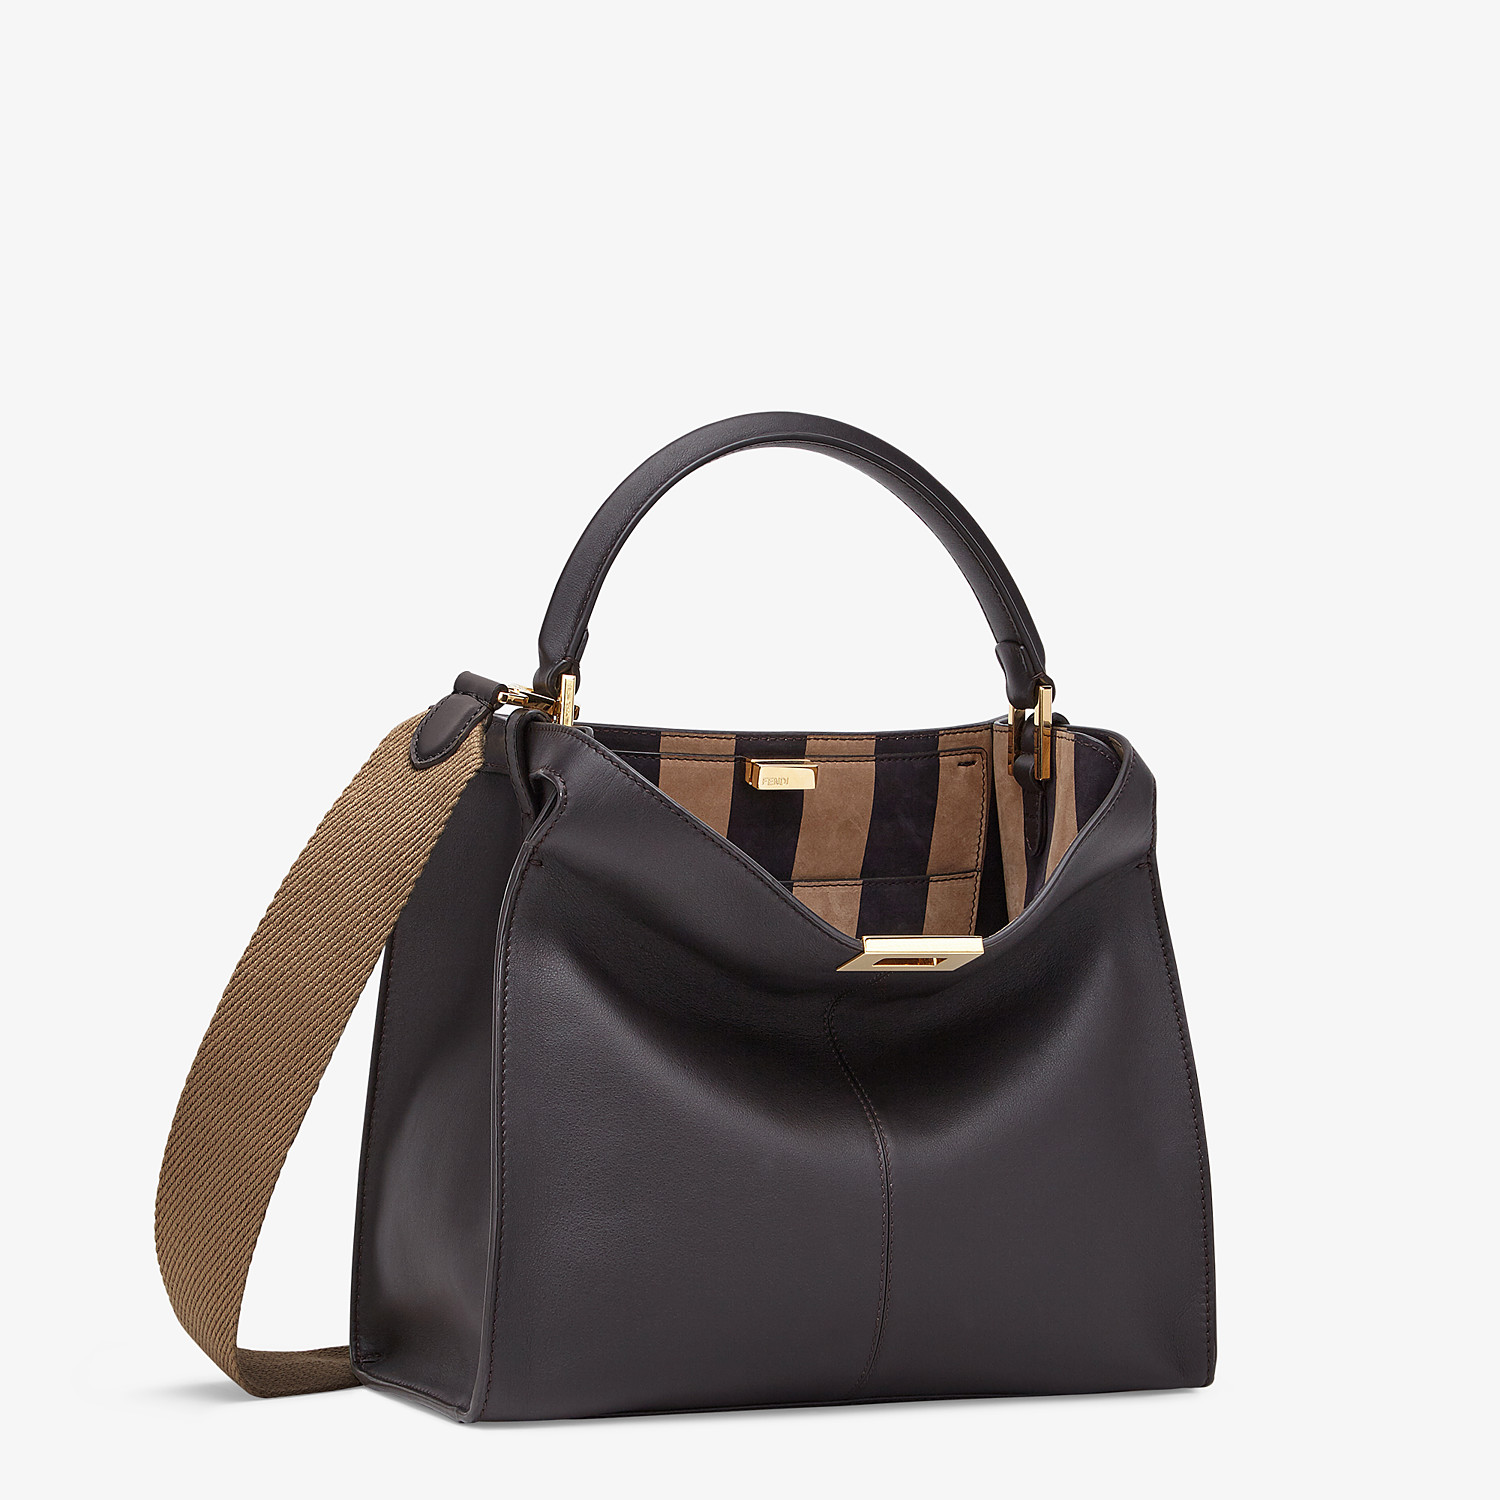 FENDI PEEKABOO X-LITE MEDIUM - Borsa in pelle marrone - vista 4 dettaglio